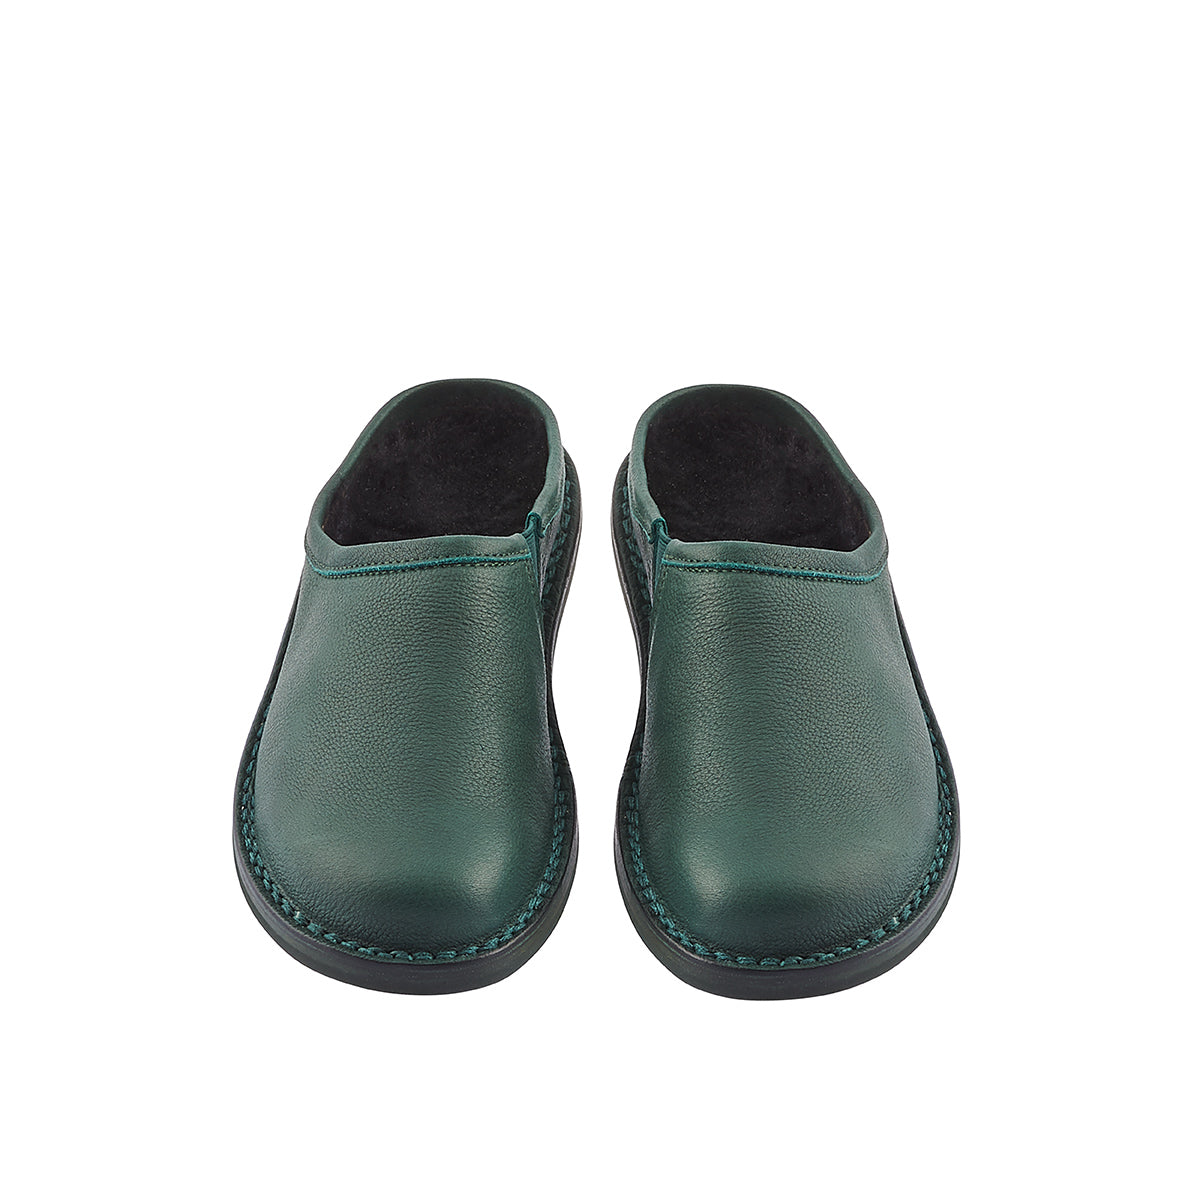 Based on Trippen's iconic style Yen, Half-Yen is a slip-on style with the most luxurious lambswool footbed to keep you feet toasty through winter. The flexible and durable sole is suitable for any surface, while the rich green leather upper will develop a beautiful patina over time.